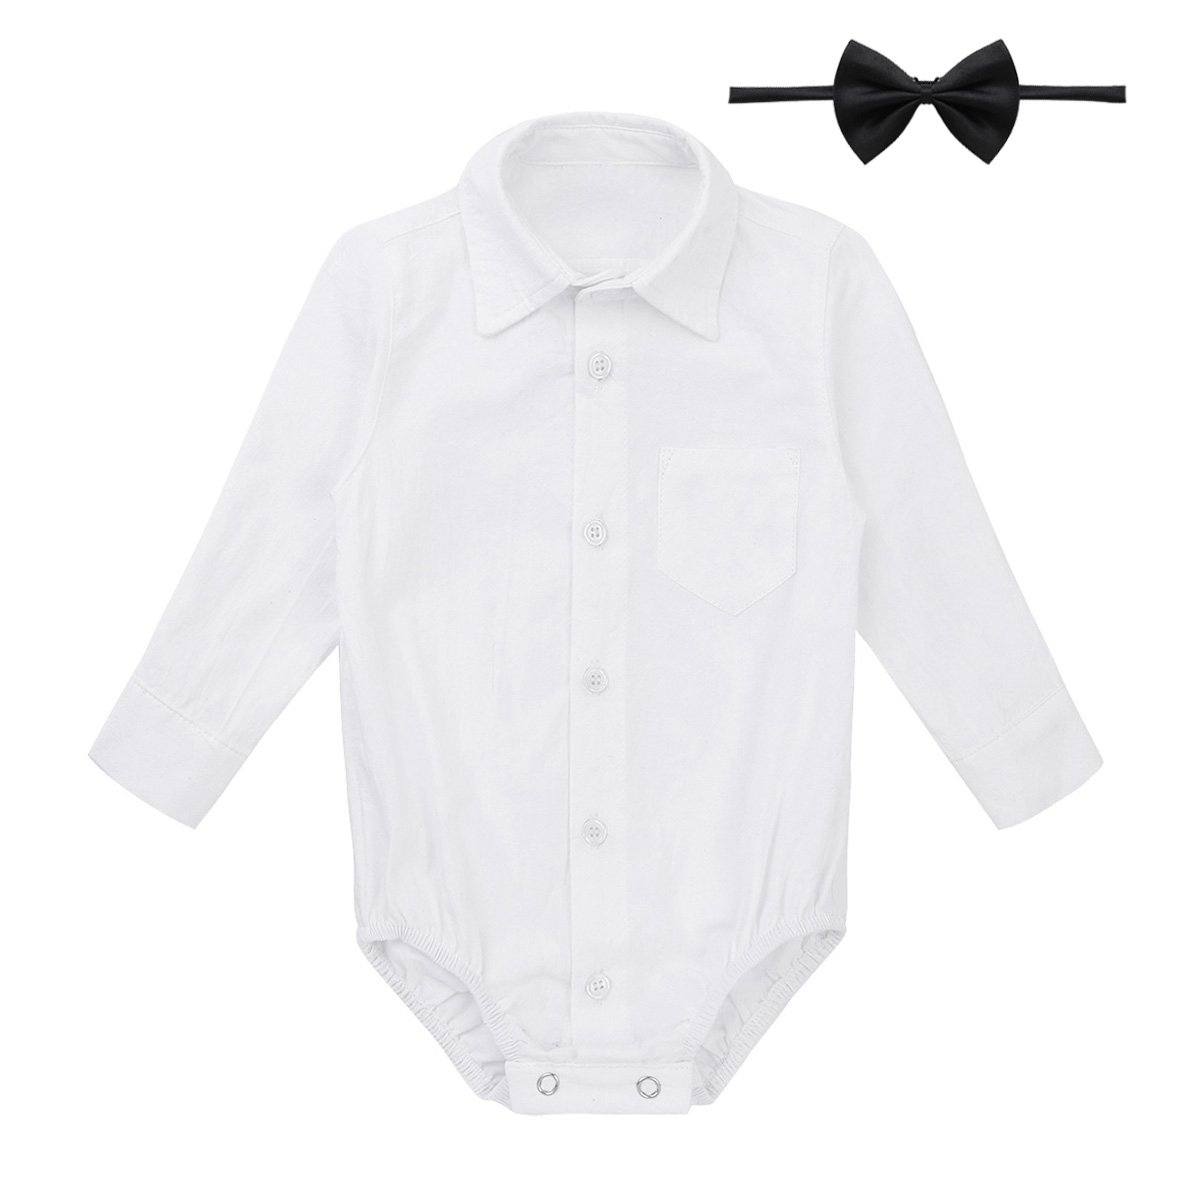 c66c5419cd99d Amazon.com: FEESHOW Infant Baby Boys Callored Long Sleeve Formal Dress  Shirt Bodysuit Gentleman Romper Wedding Party Outfits: Clothing